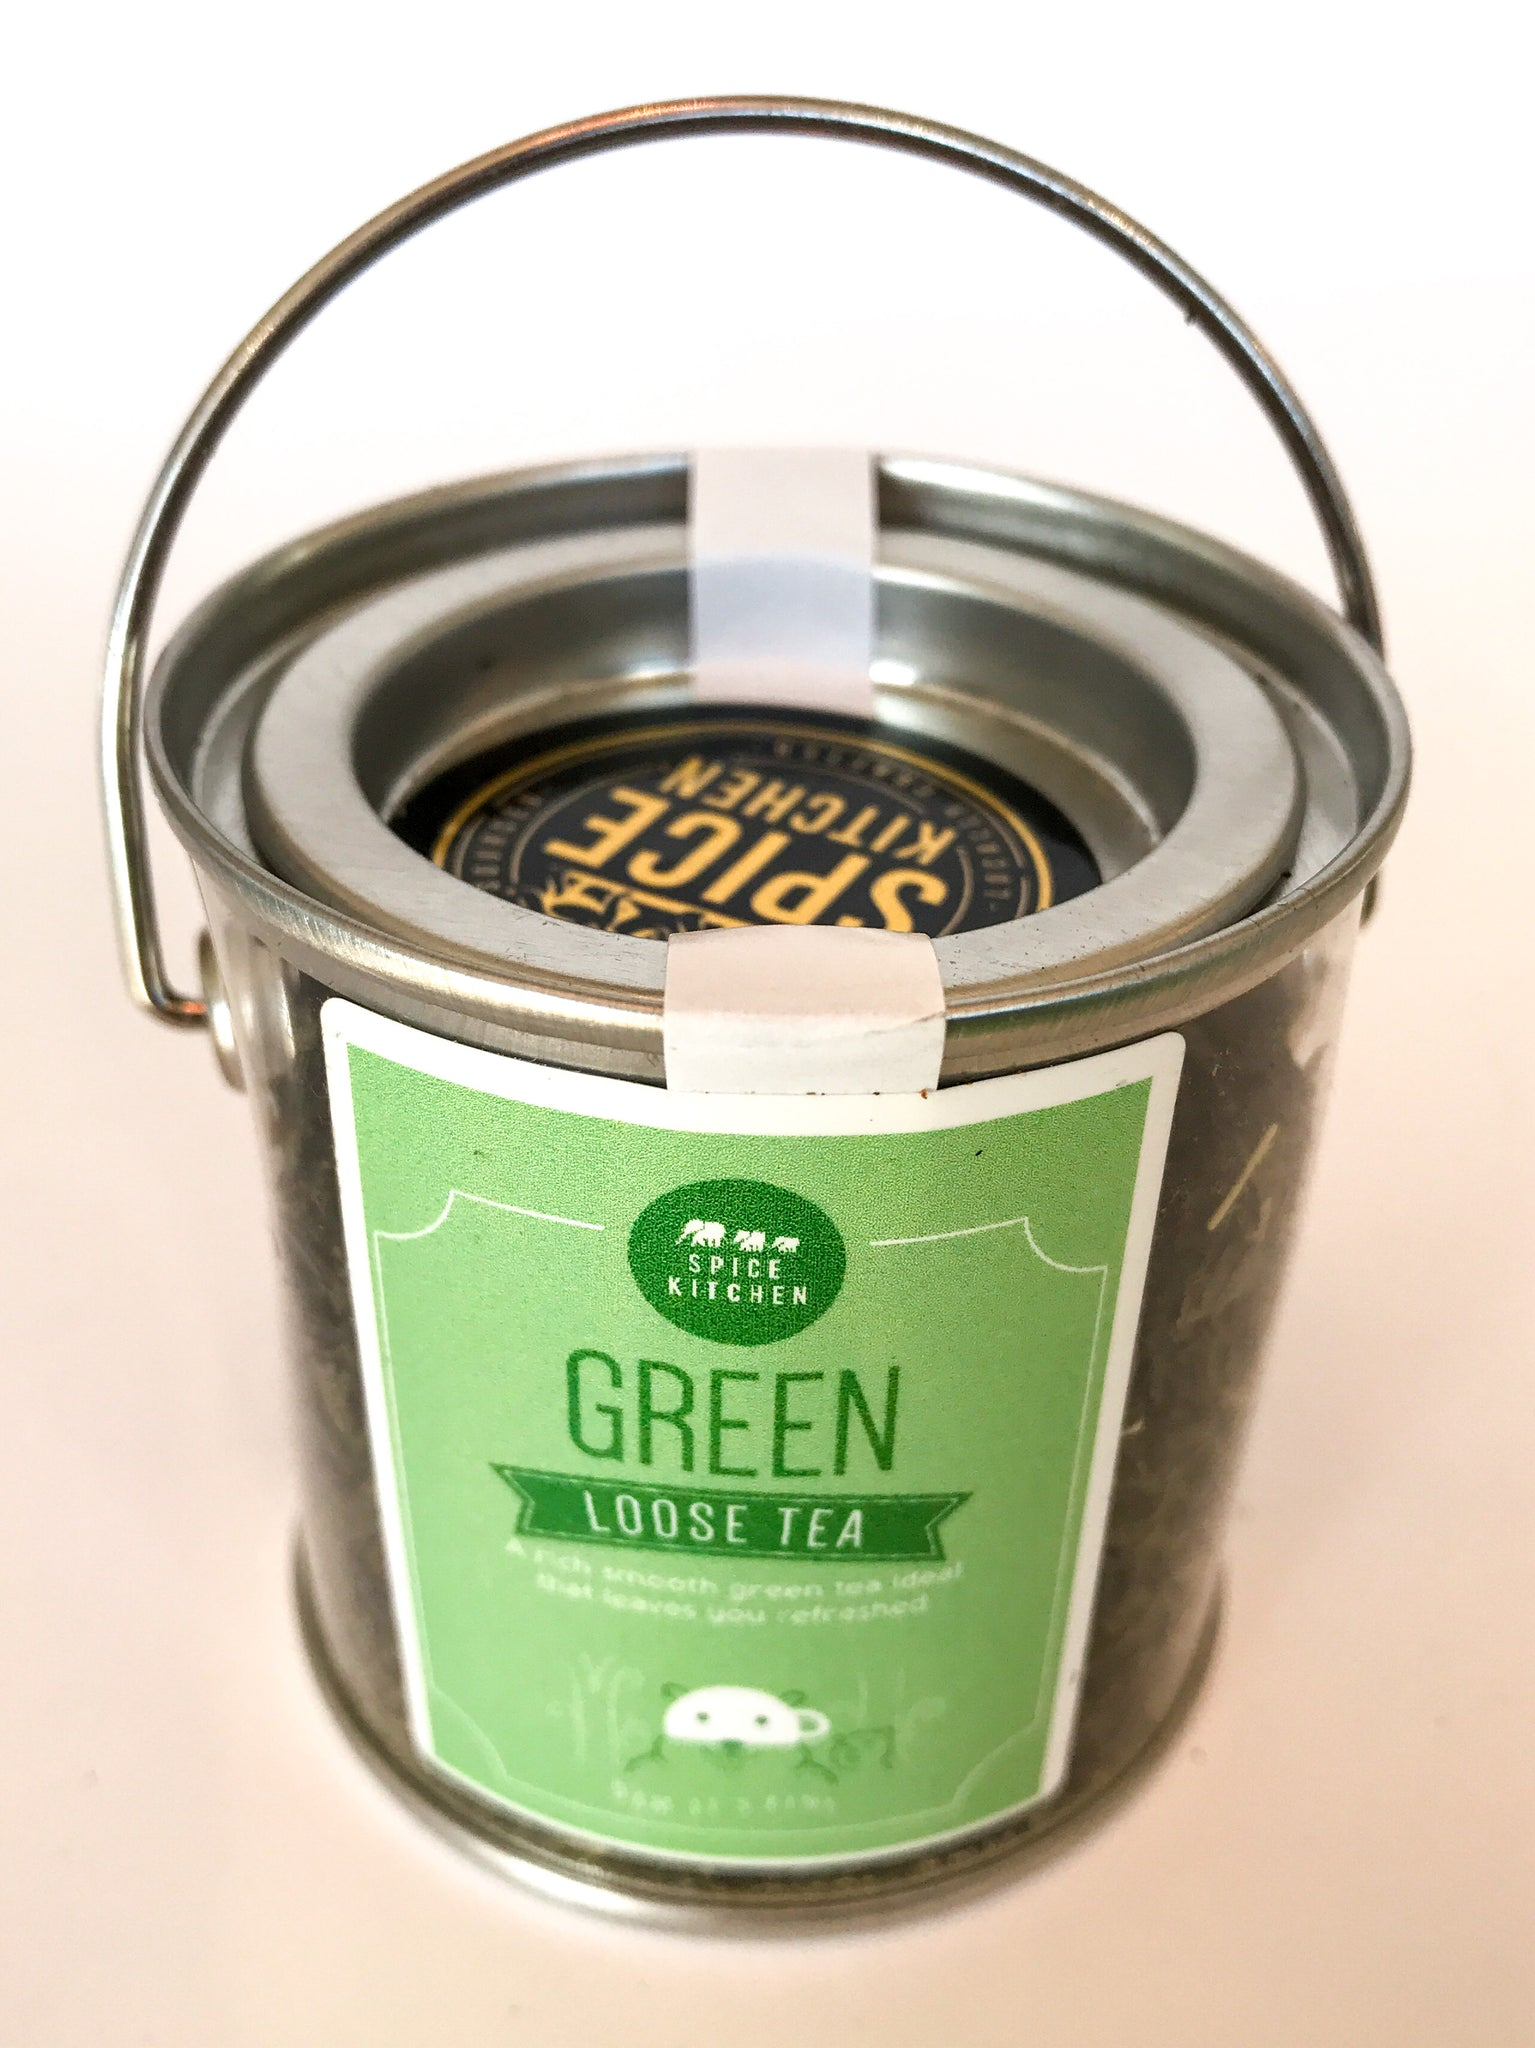 Spice Kitchen Loose Tea 'Paint Pots' - Green Tea